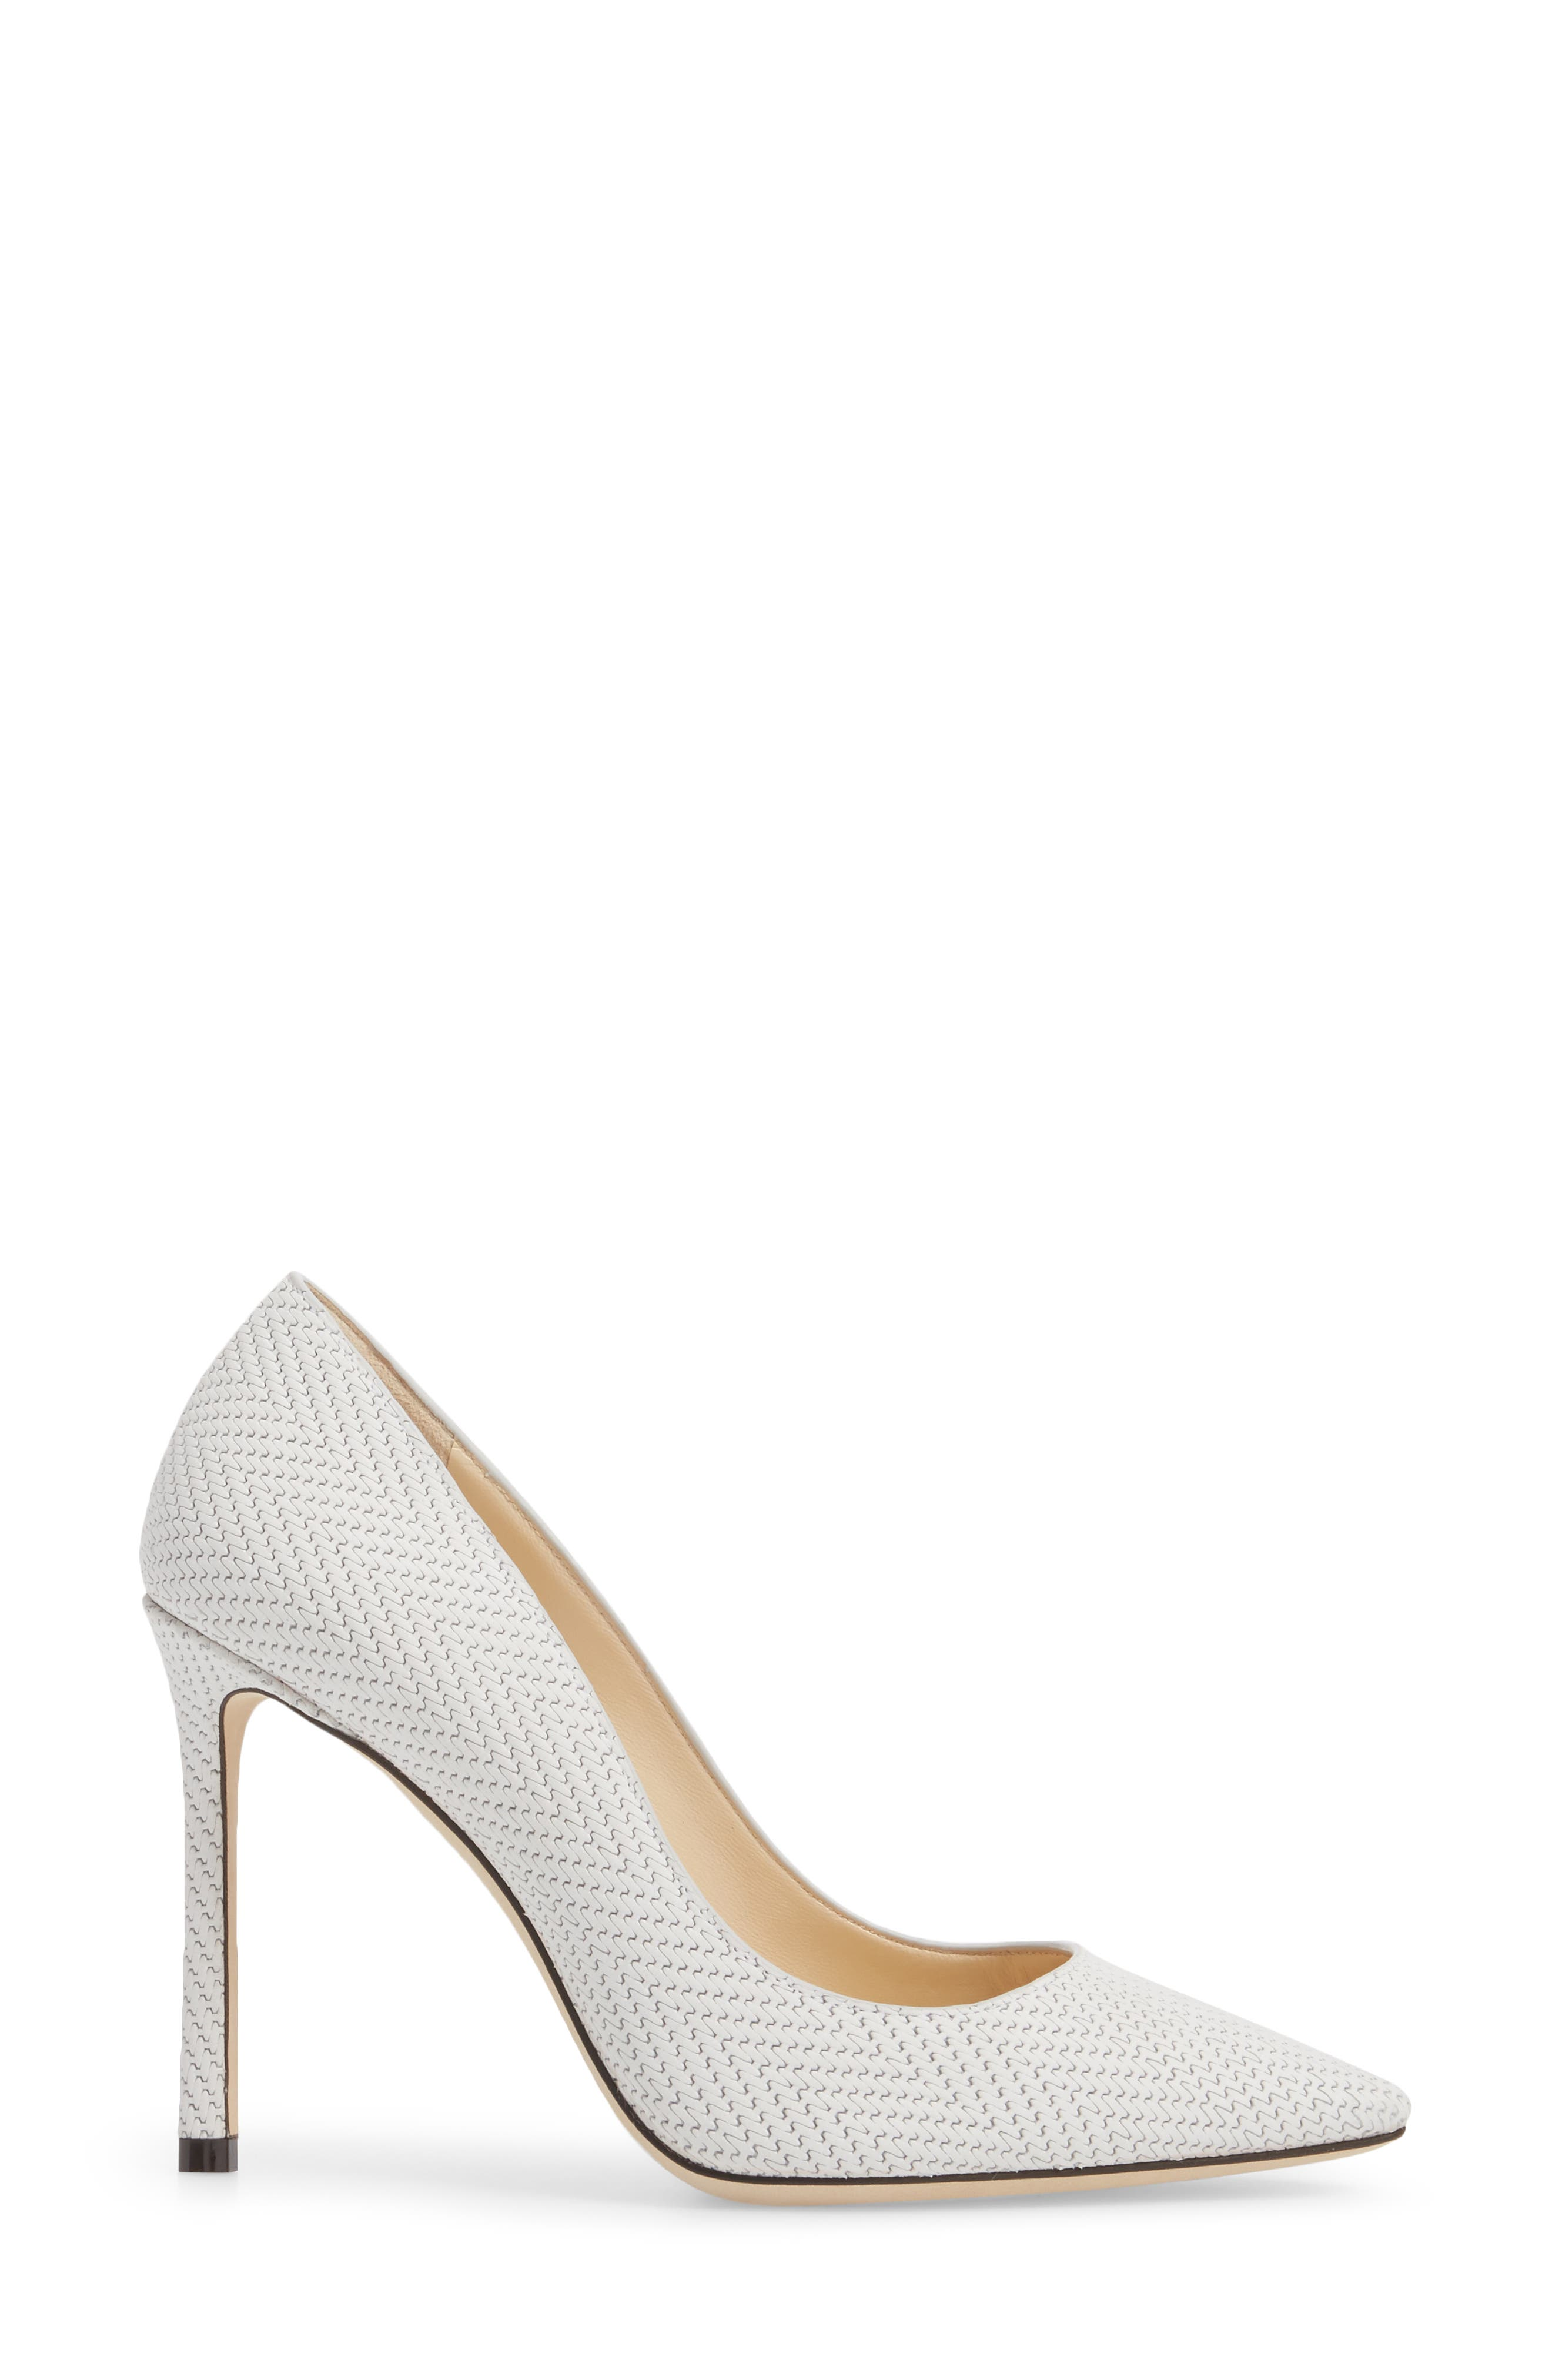 Romy Pointy Toe Pump,                             Alternate thumbnail 3, color,                             100